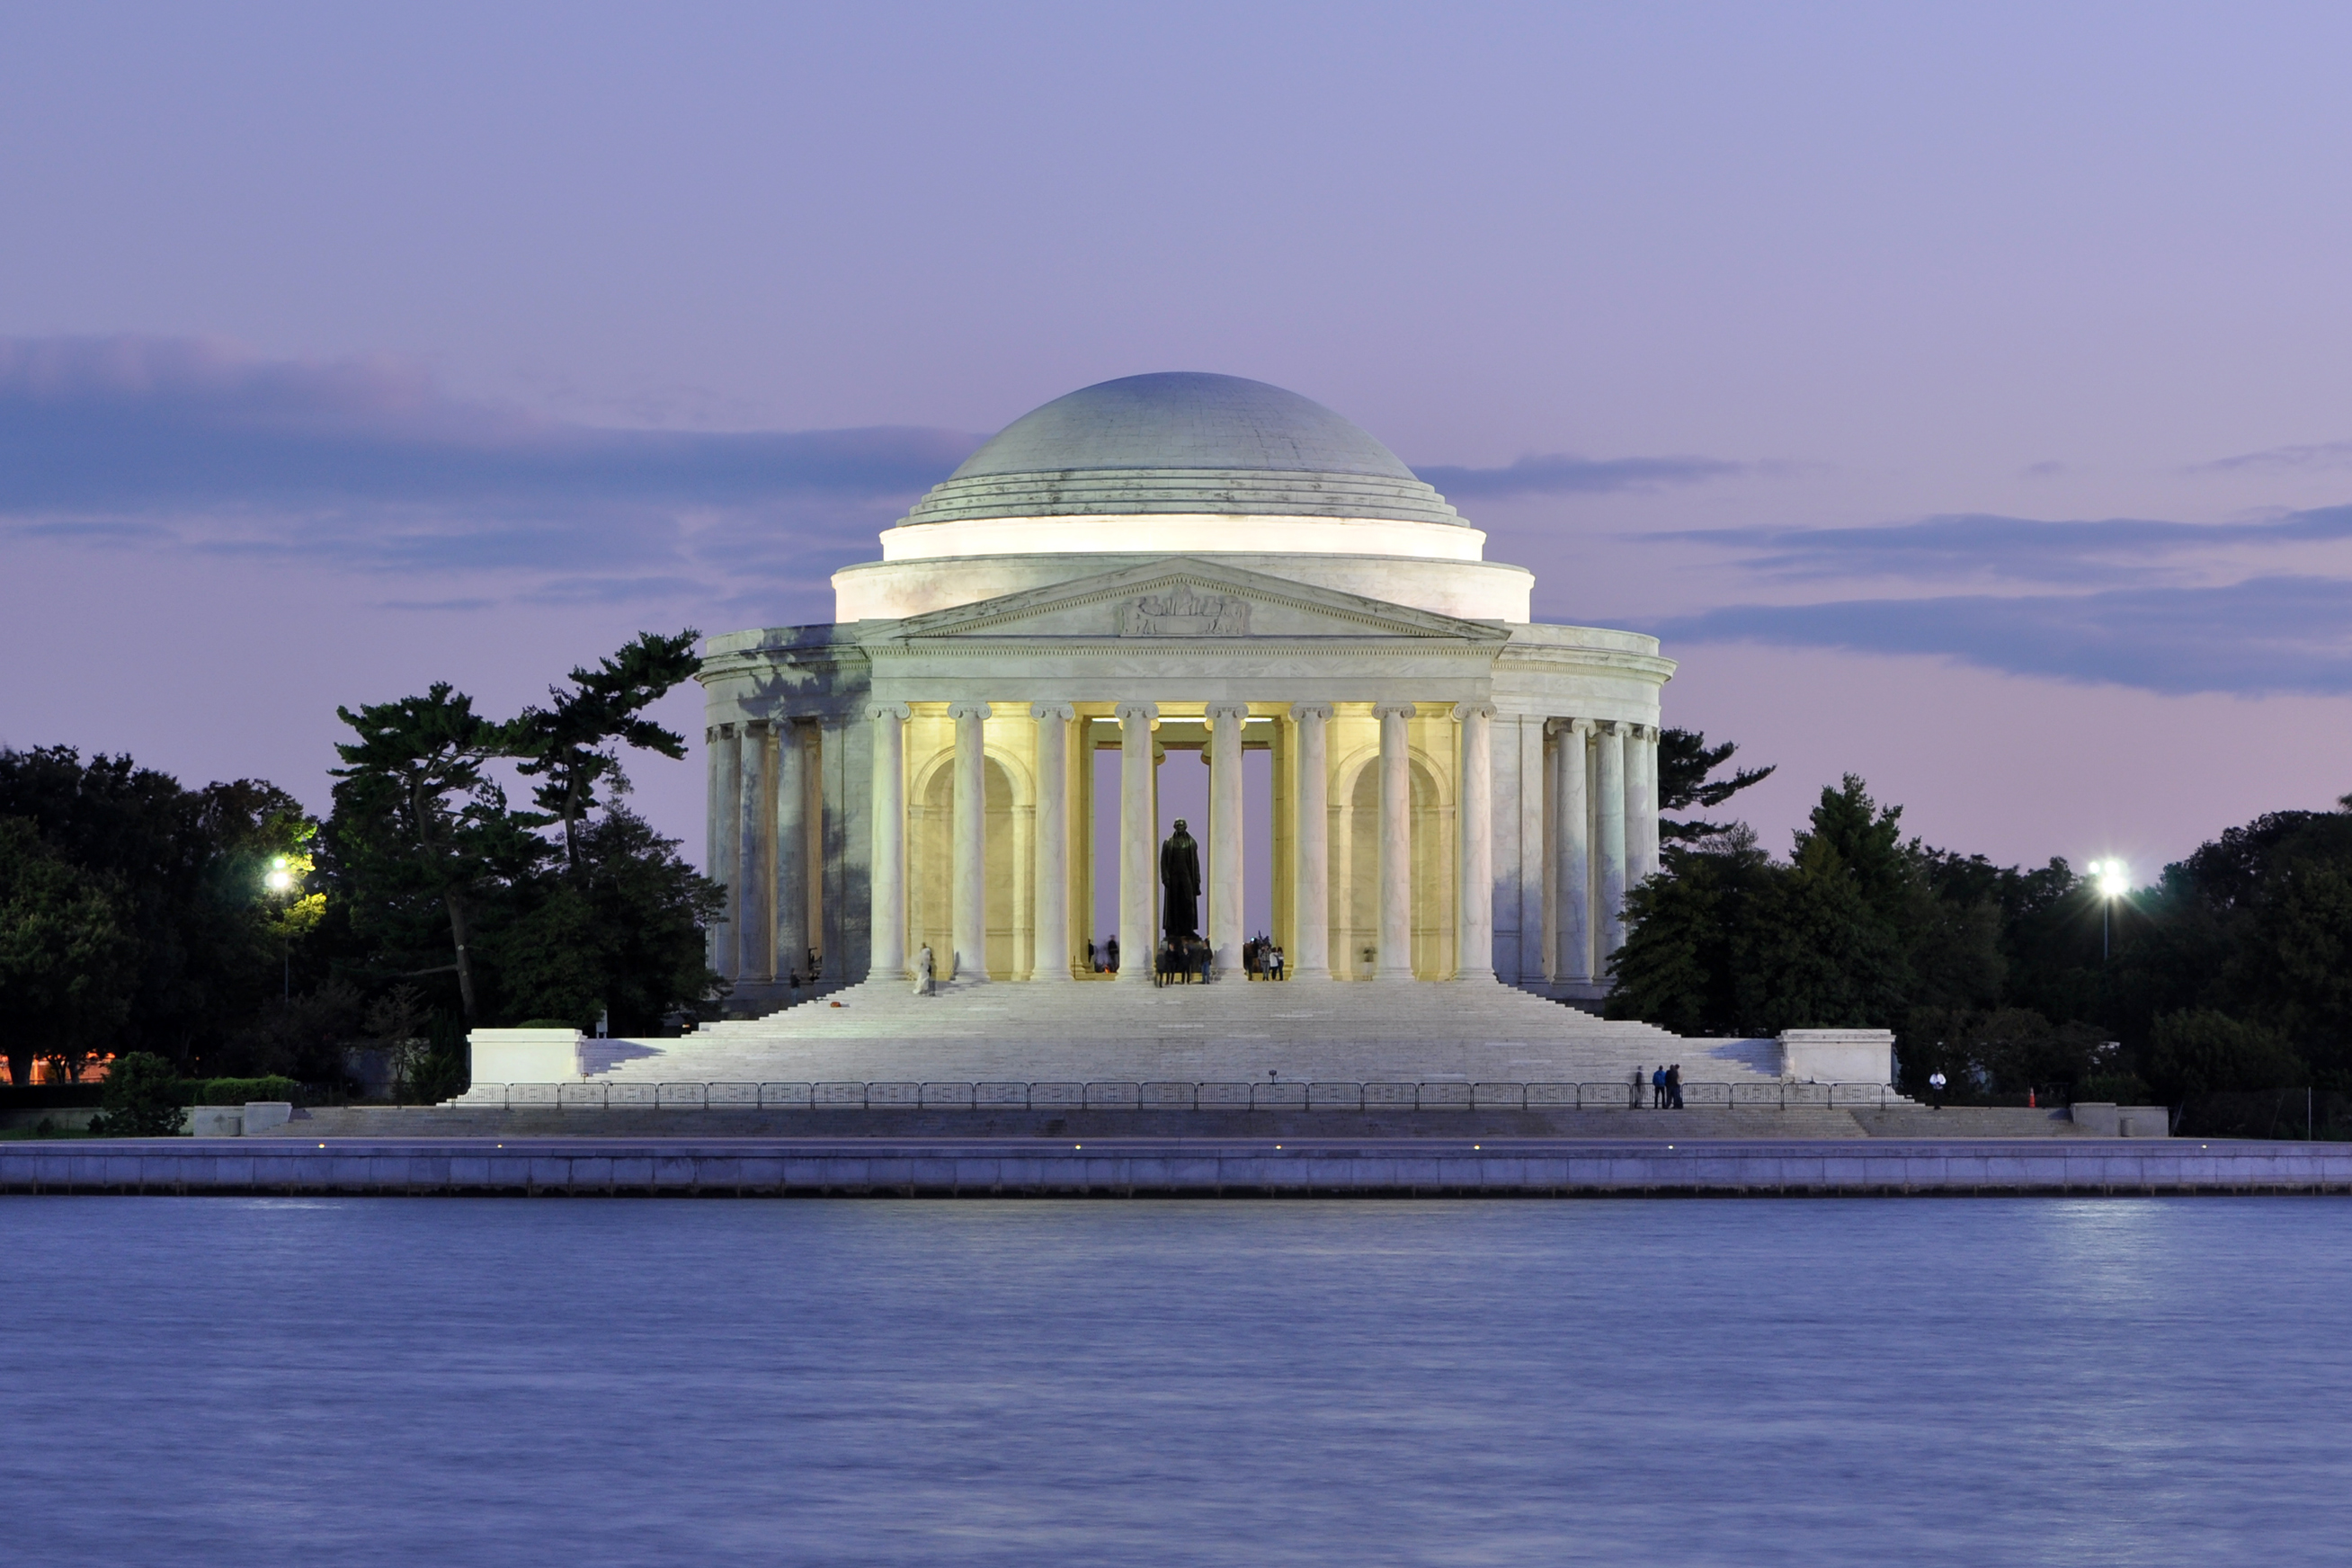 View of the Jefferson Memorial from the Tidal Basin at dusk. Photo by Joe Ravi, CC-BY-SA 3.0, Wikimedia Commons.